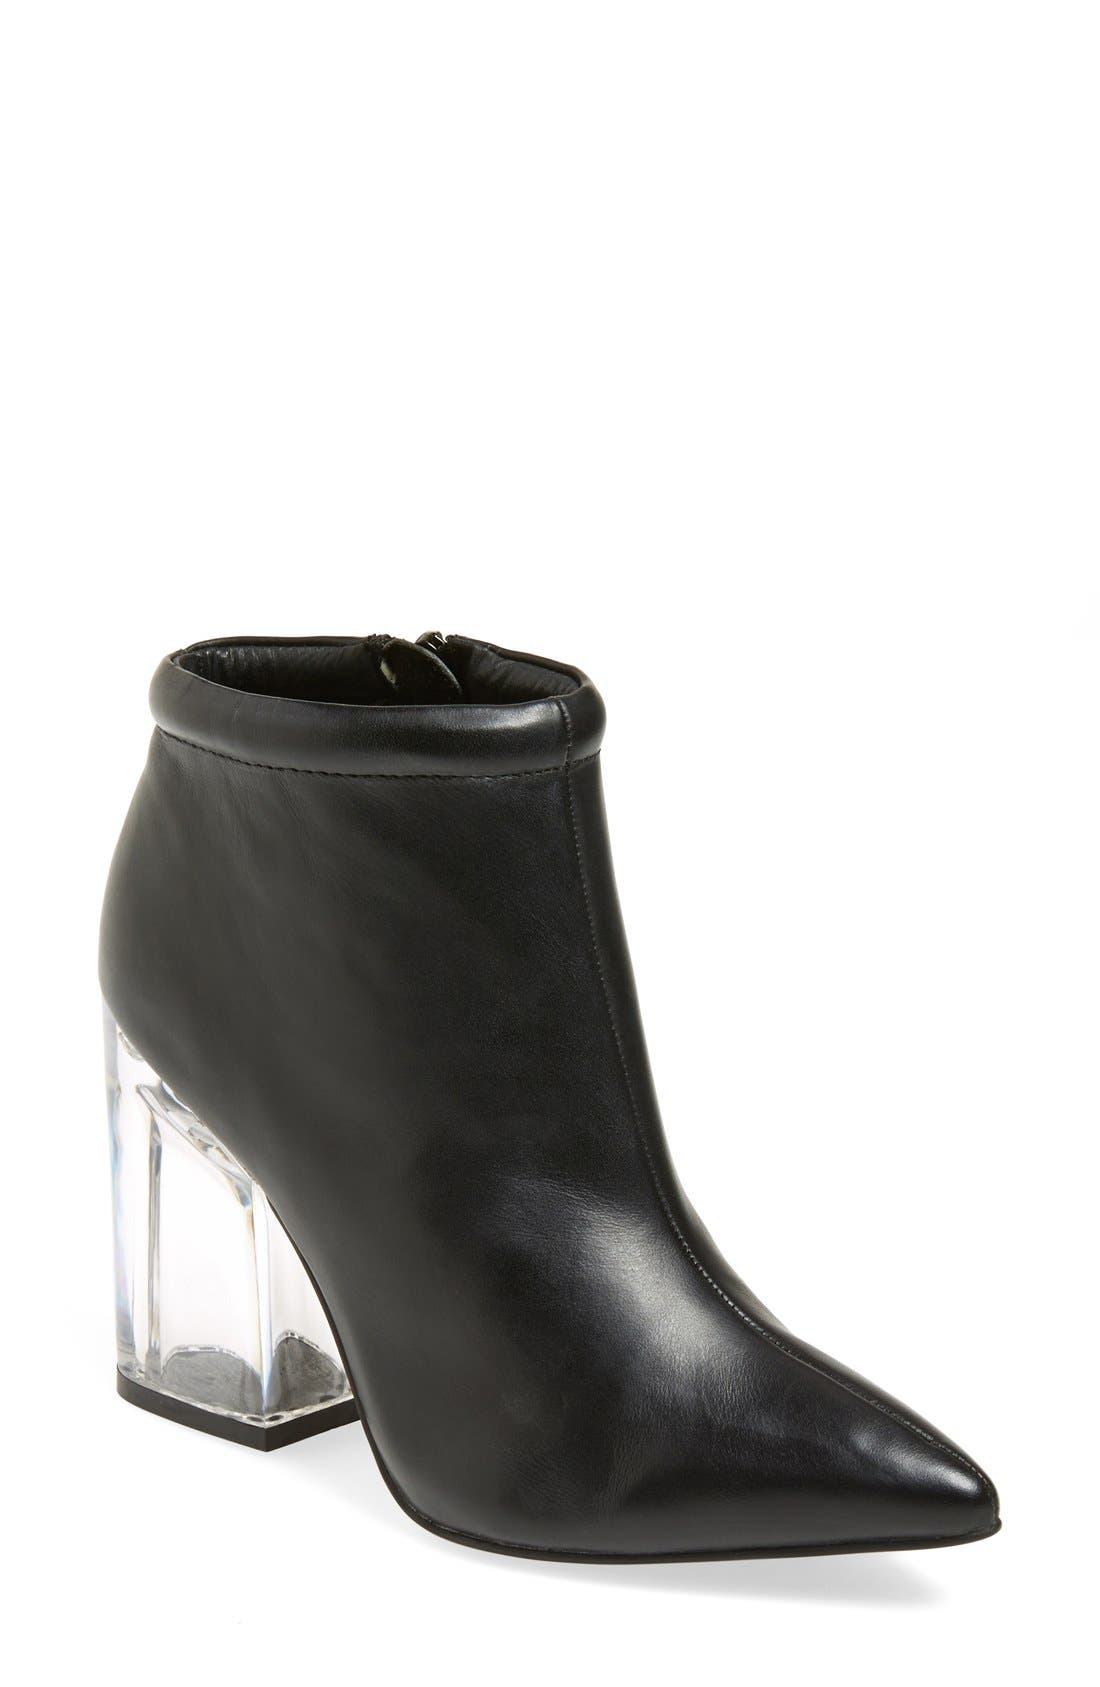 Main Image - Jeffrey Campbell 'Truly' Ankle Boot (Women)